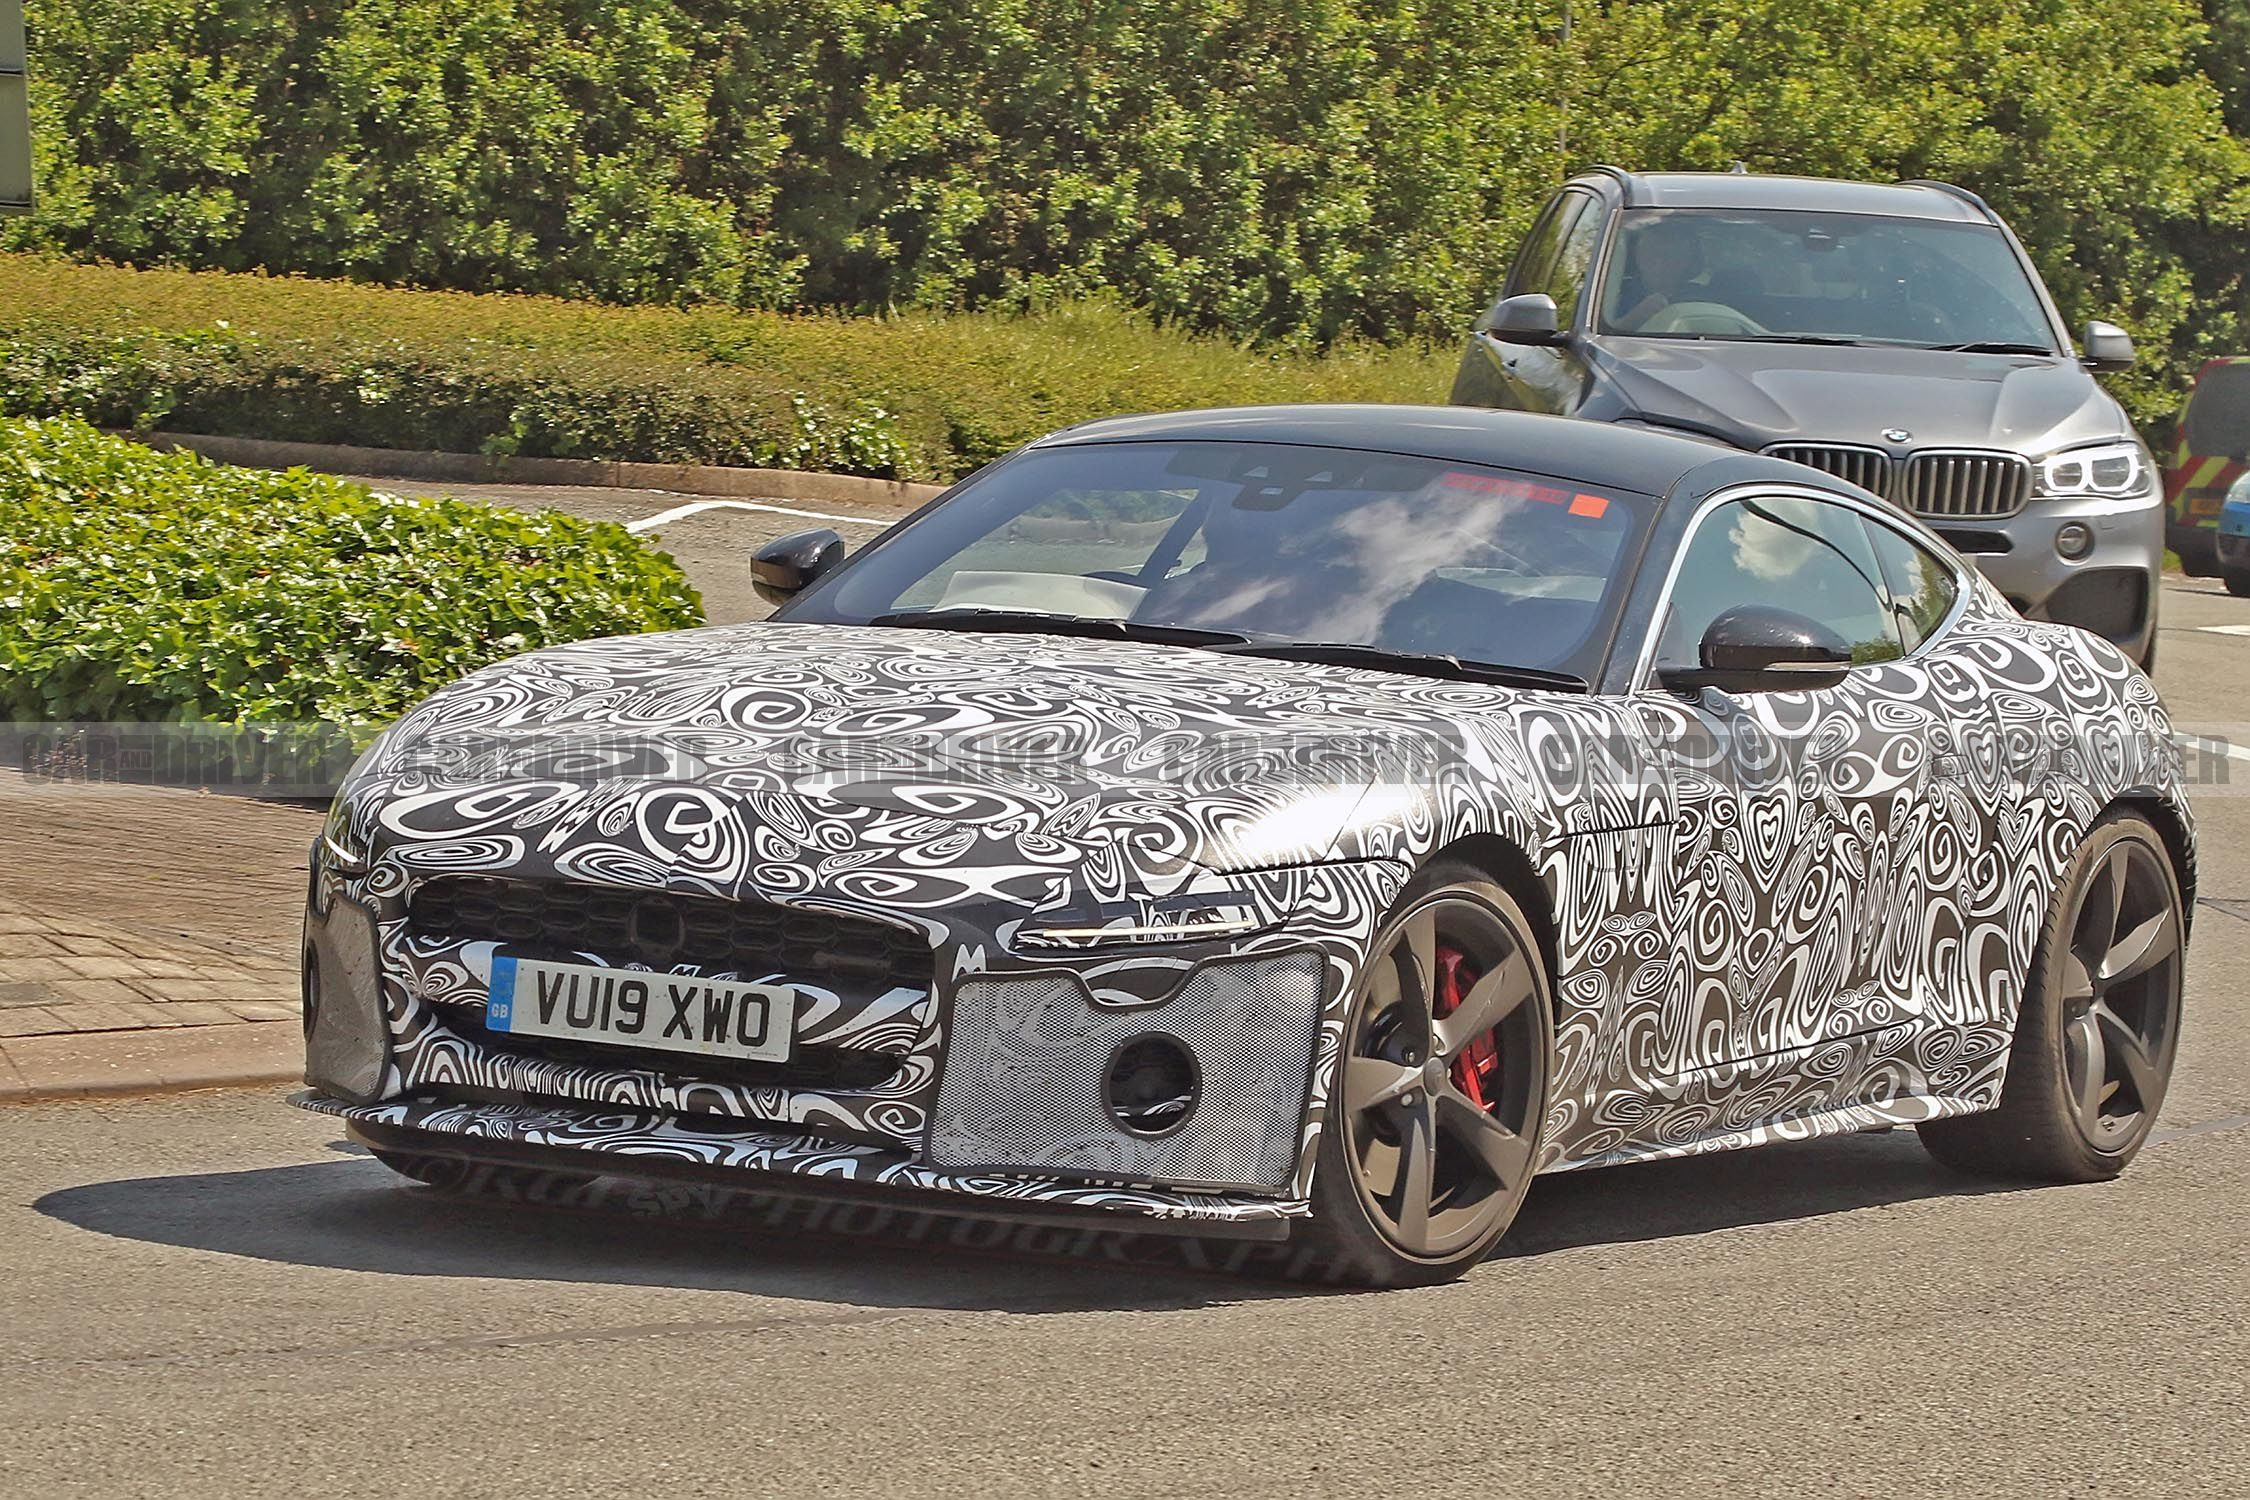 The Jaguar F Type Sports Car Is Getting A Major Facelift